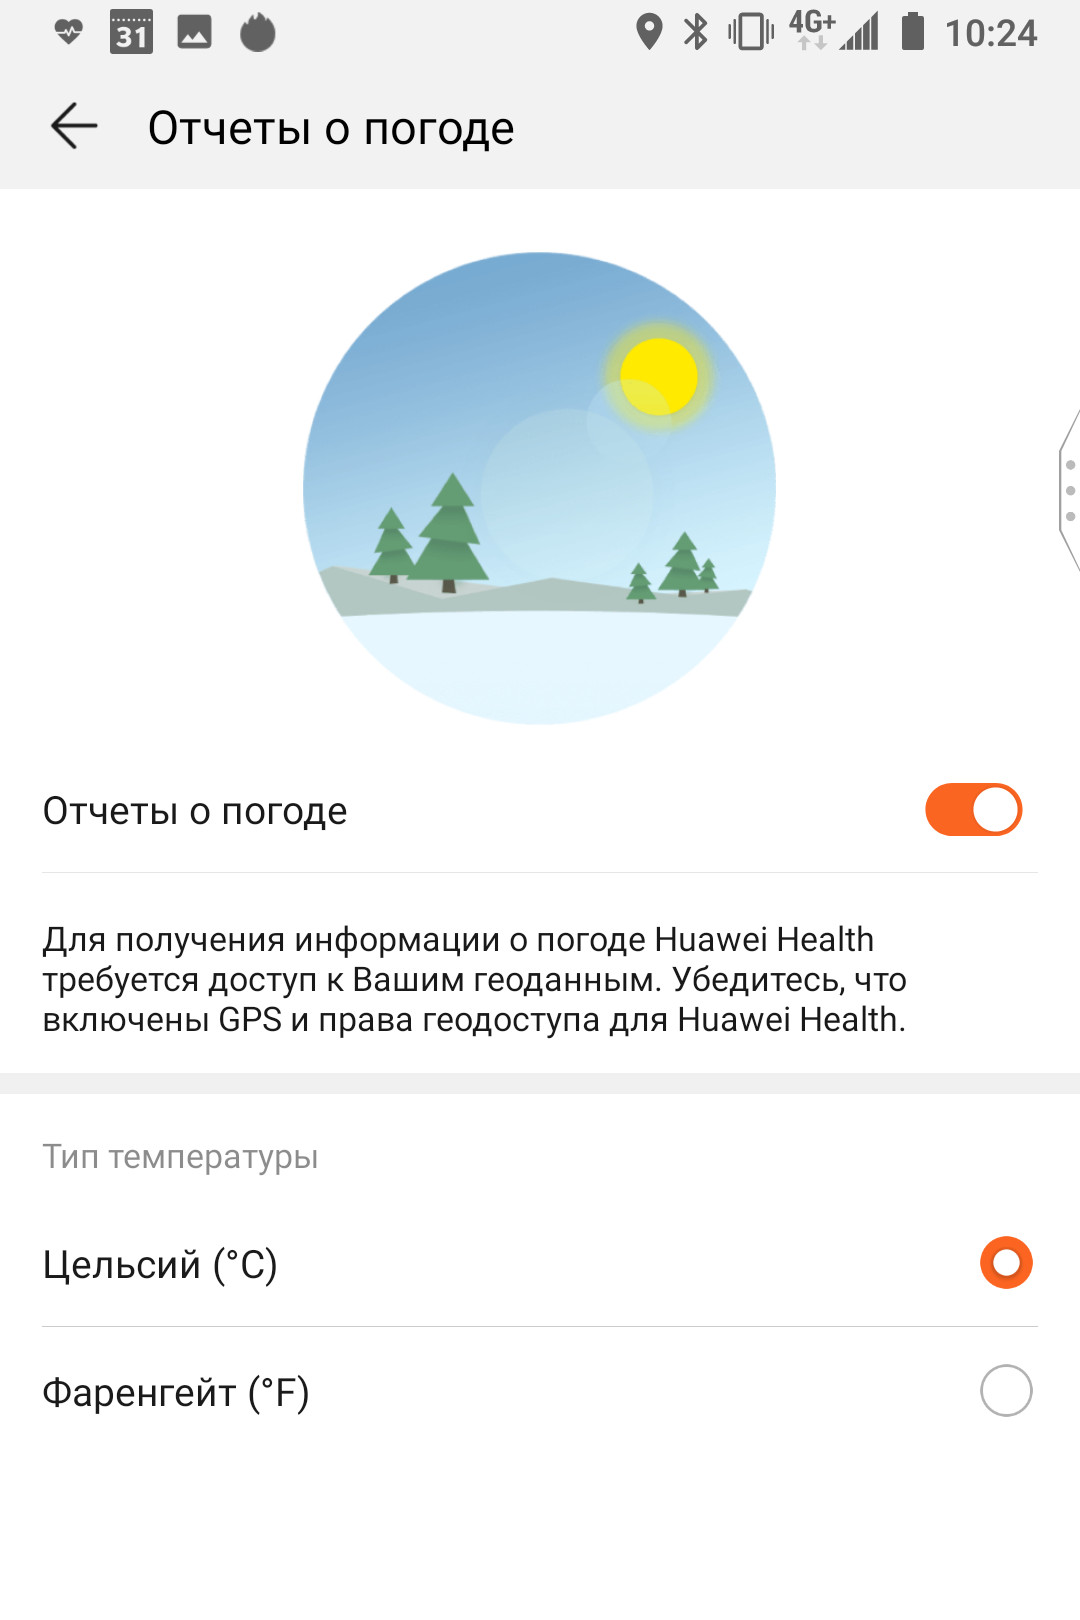 Обзор Band 3 Pro и Huawei Watch GT Huawei  - obzor_huawei_watch_gt_i_band_3_pro_chasy_protiv_brasleta_picture39_22